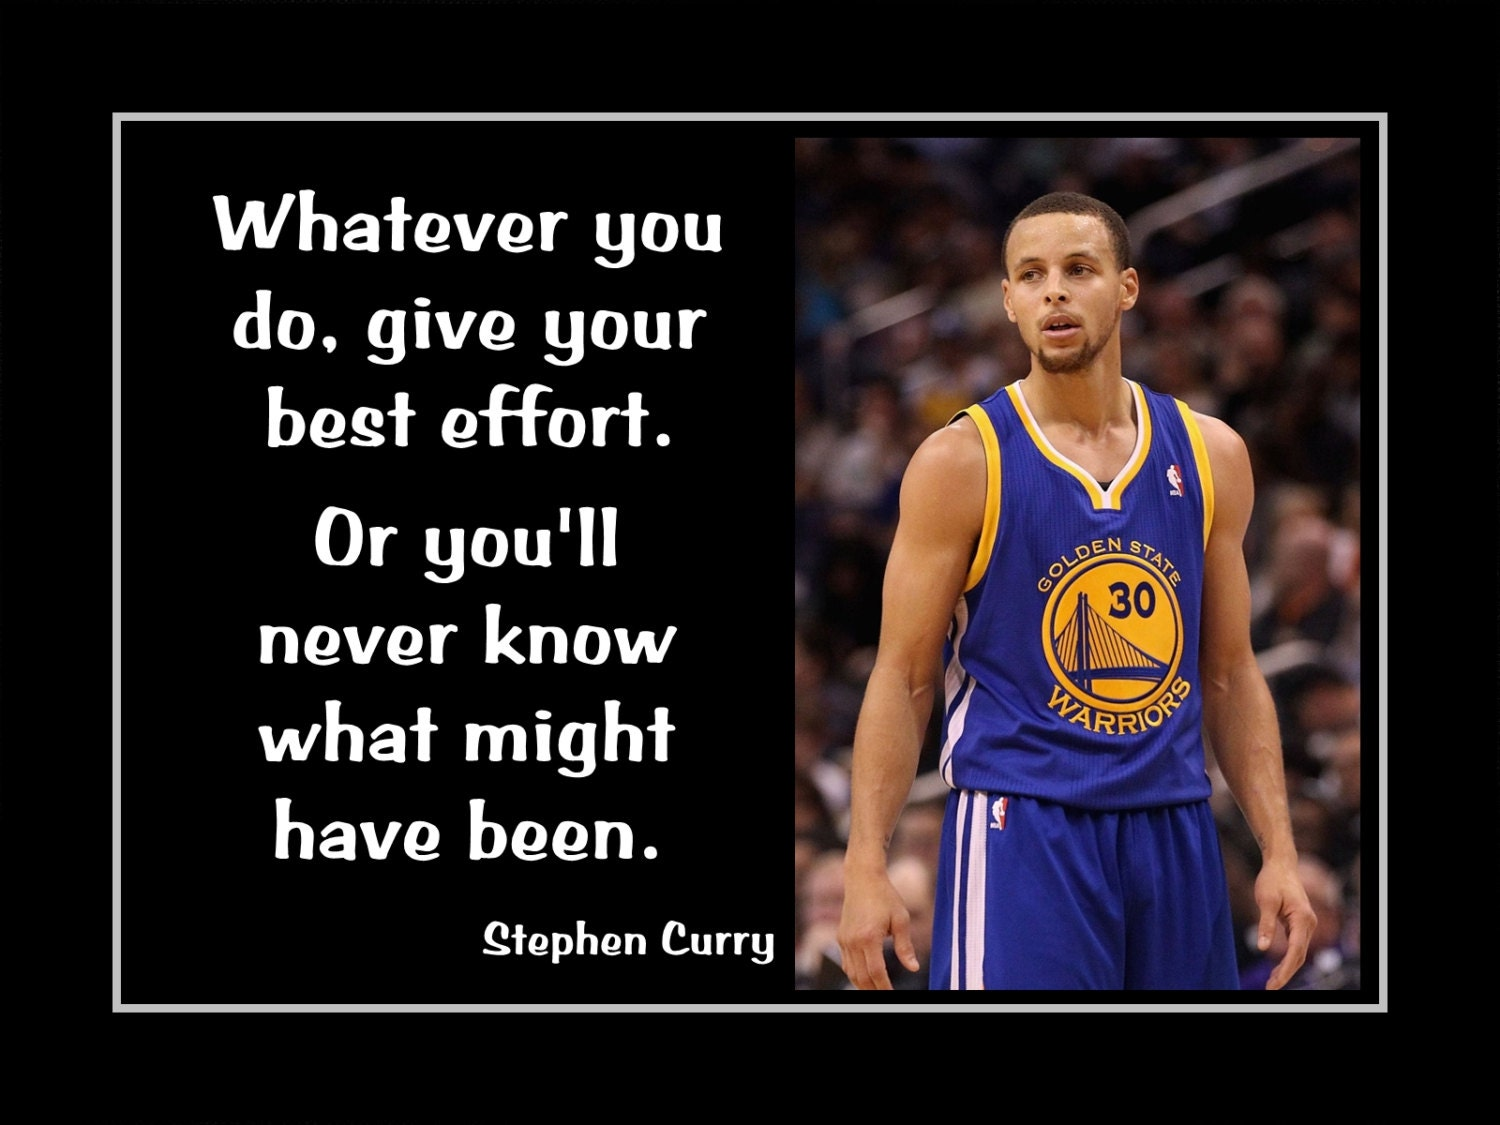 Basketball Wall Art Stephen Curry Motivation Quote by ArleyArt